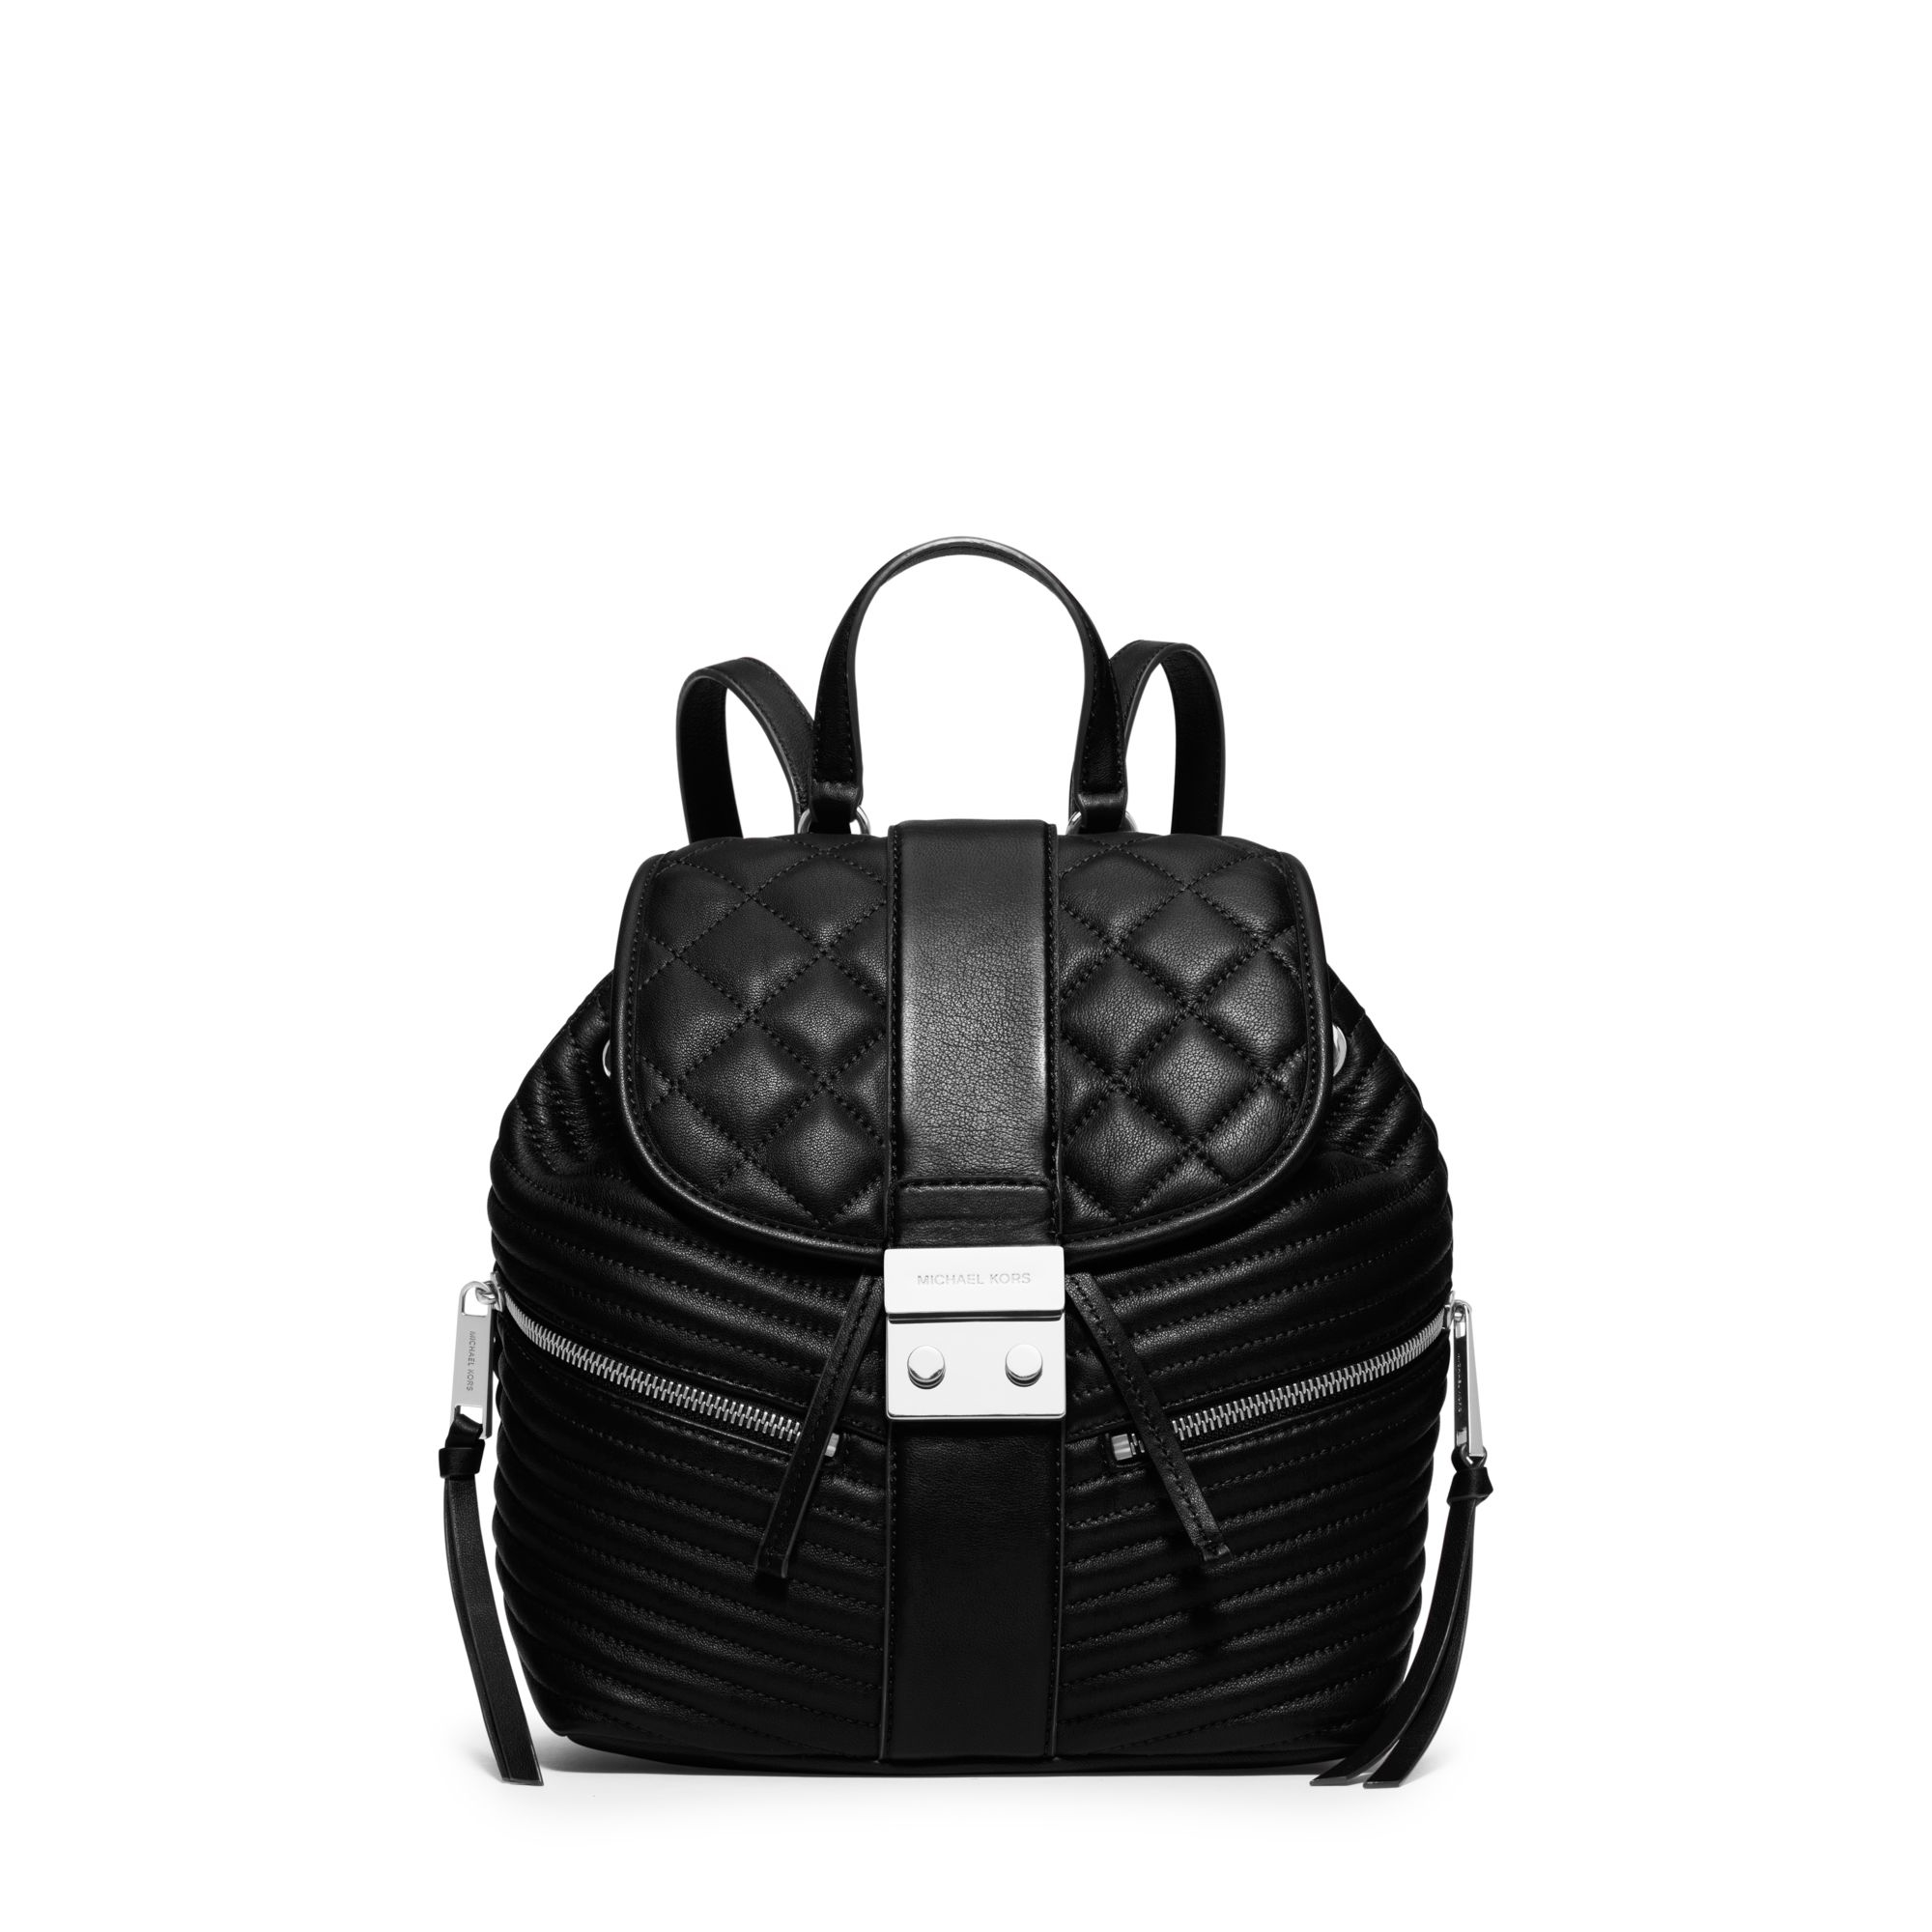 Michael kors Elisa Small Leather Backpack in Black | Lyst